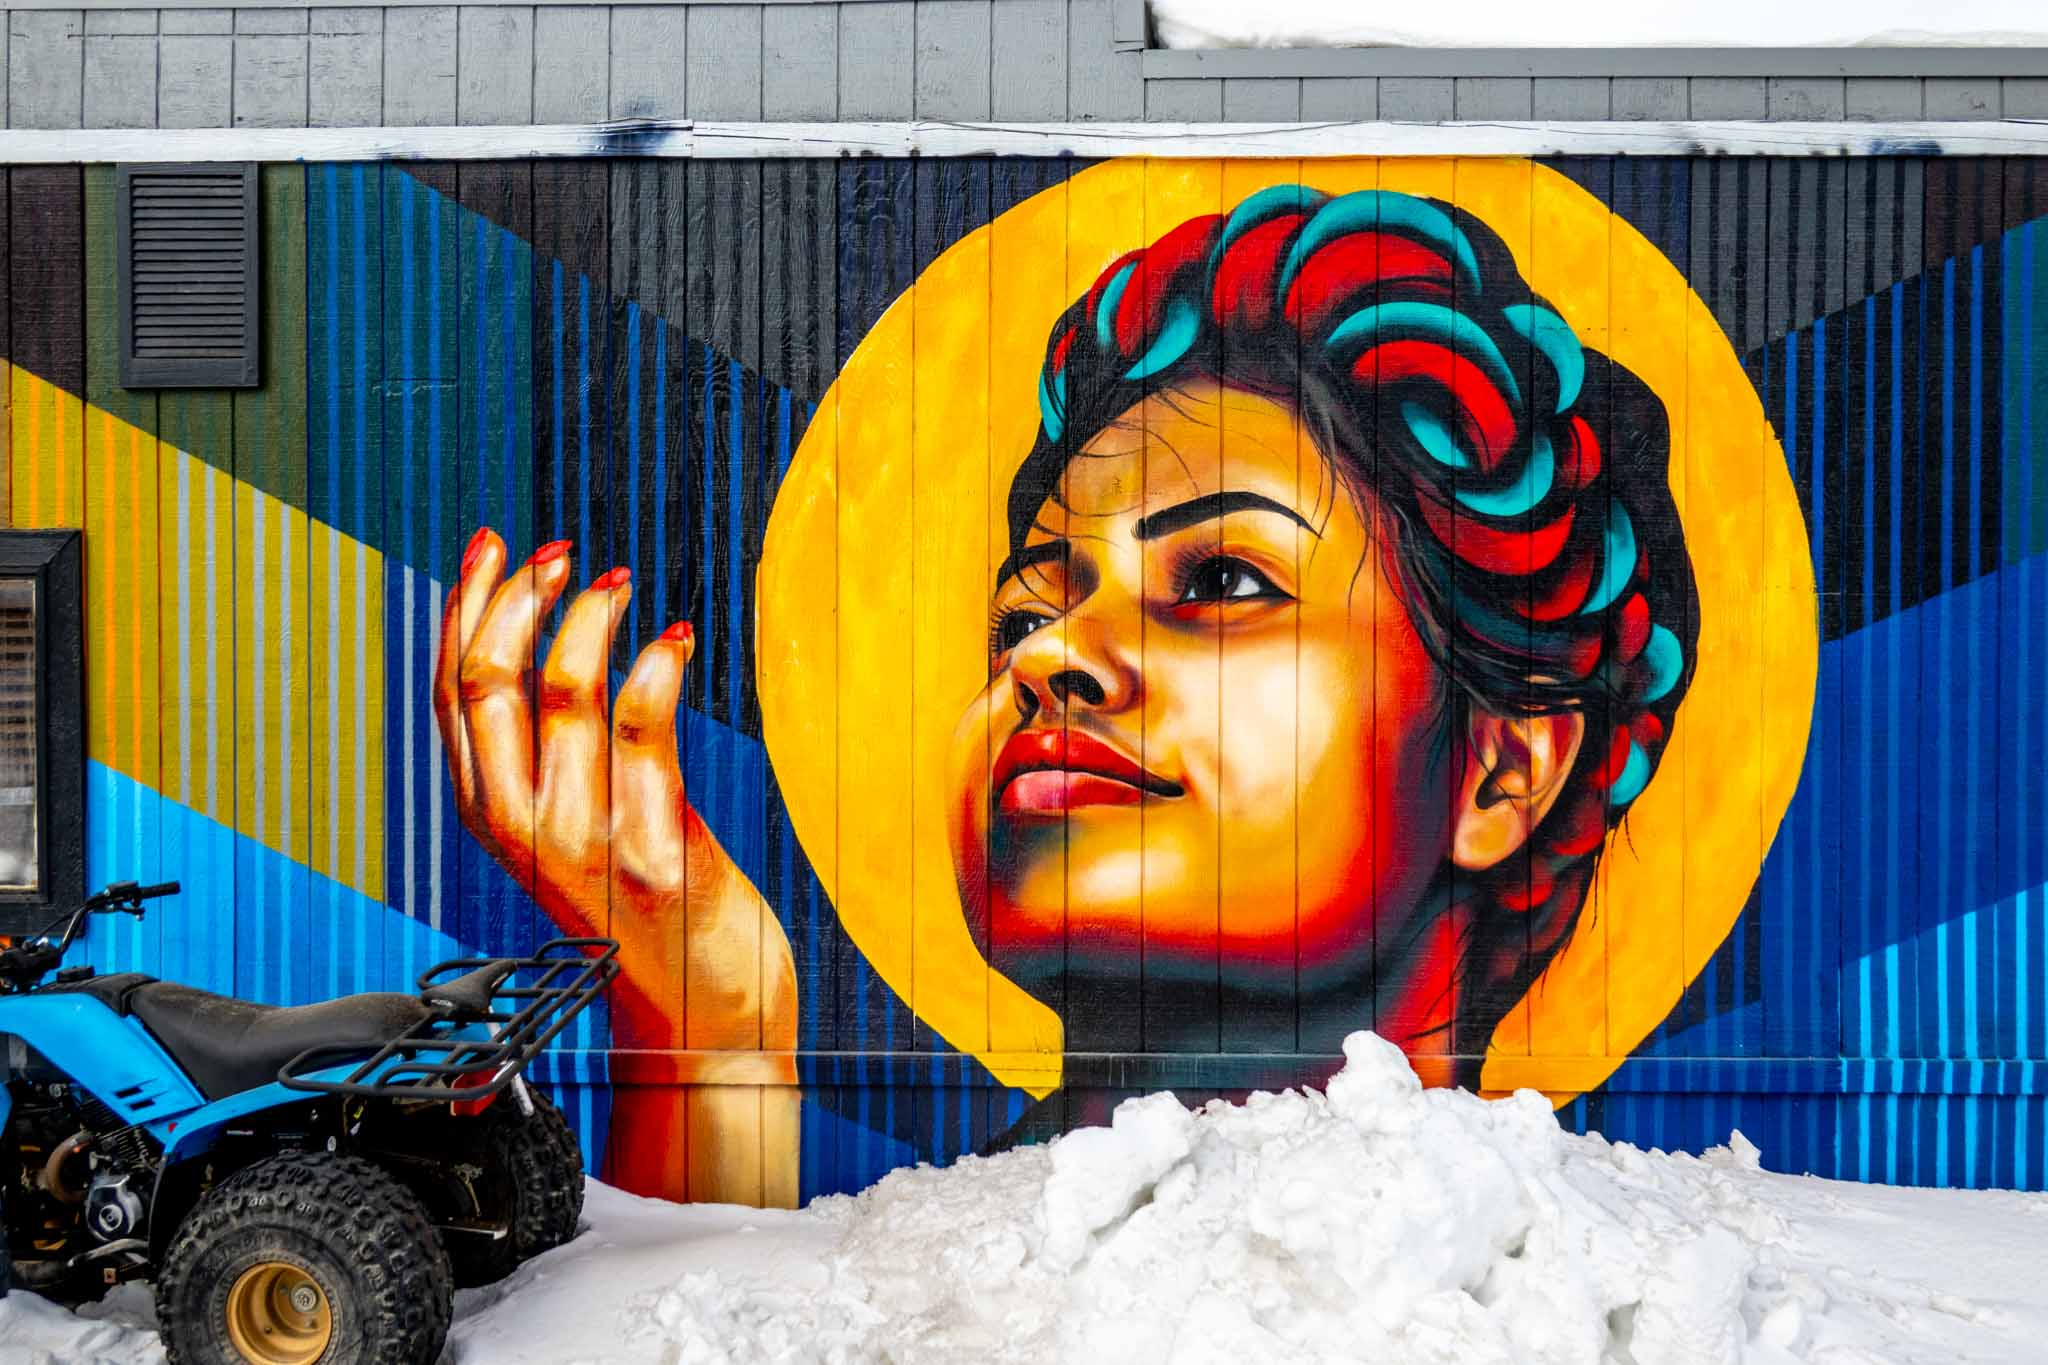 Street art mural of Latina woman on side of building